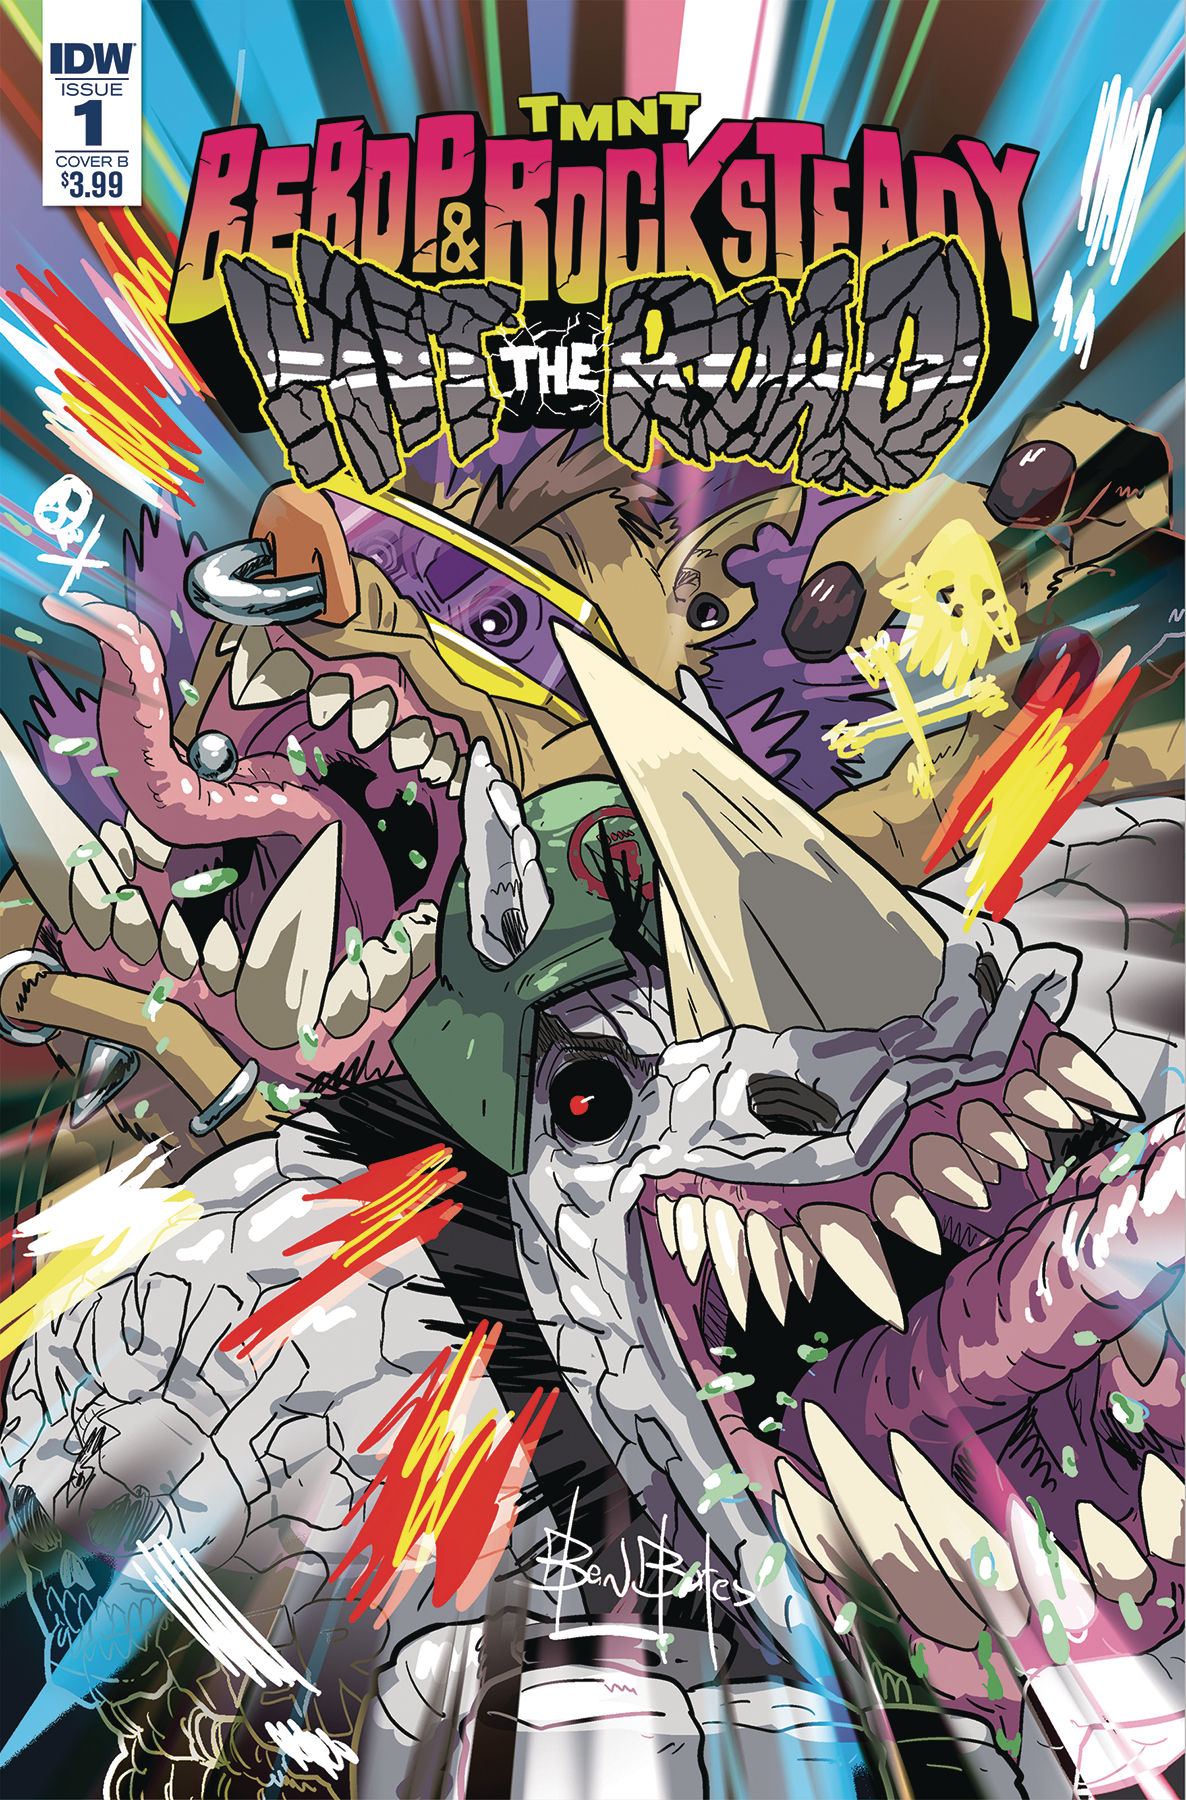 TMNT BEBOP ROCKSTEADY HIT THE ROAD #1 (OF 5) CVR B BATES